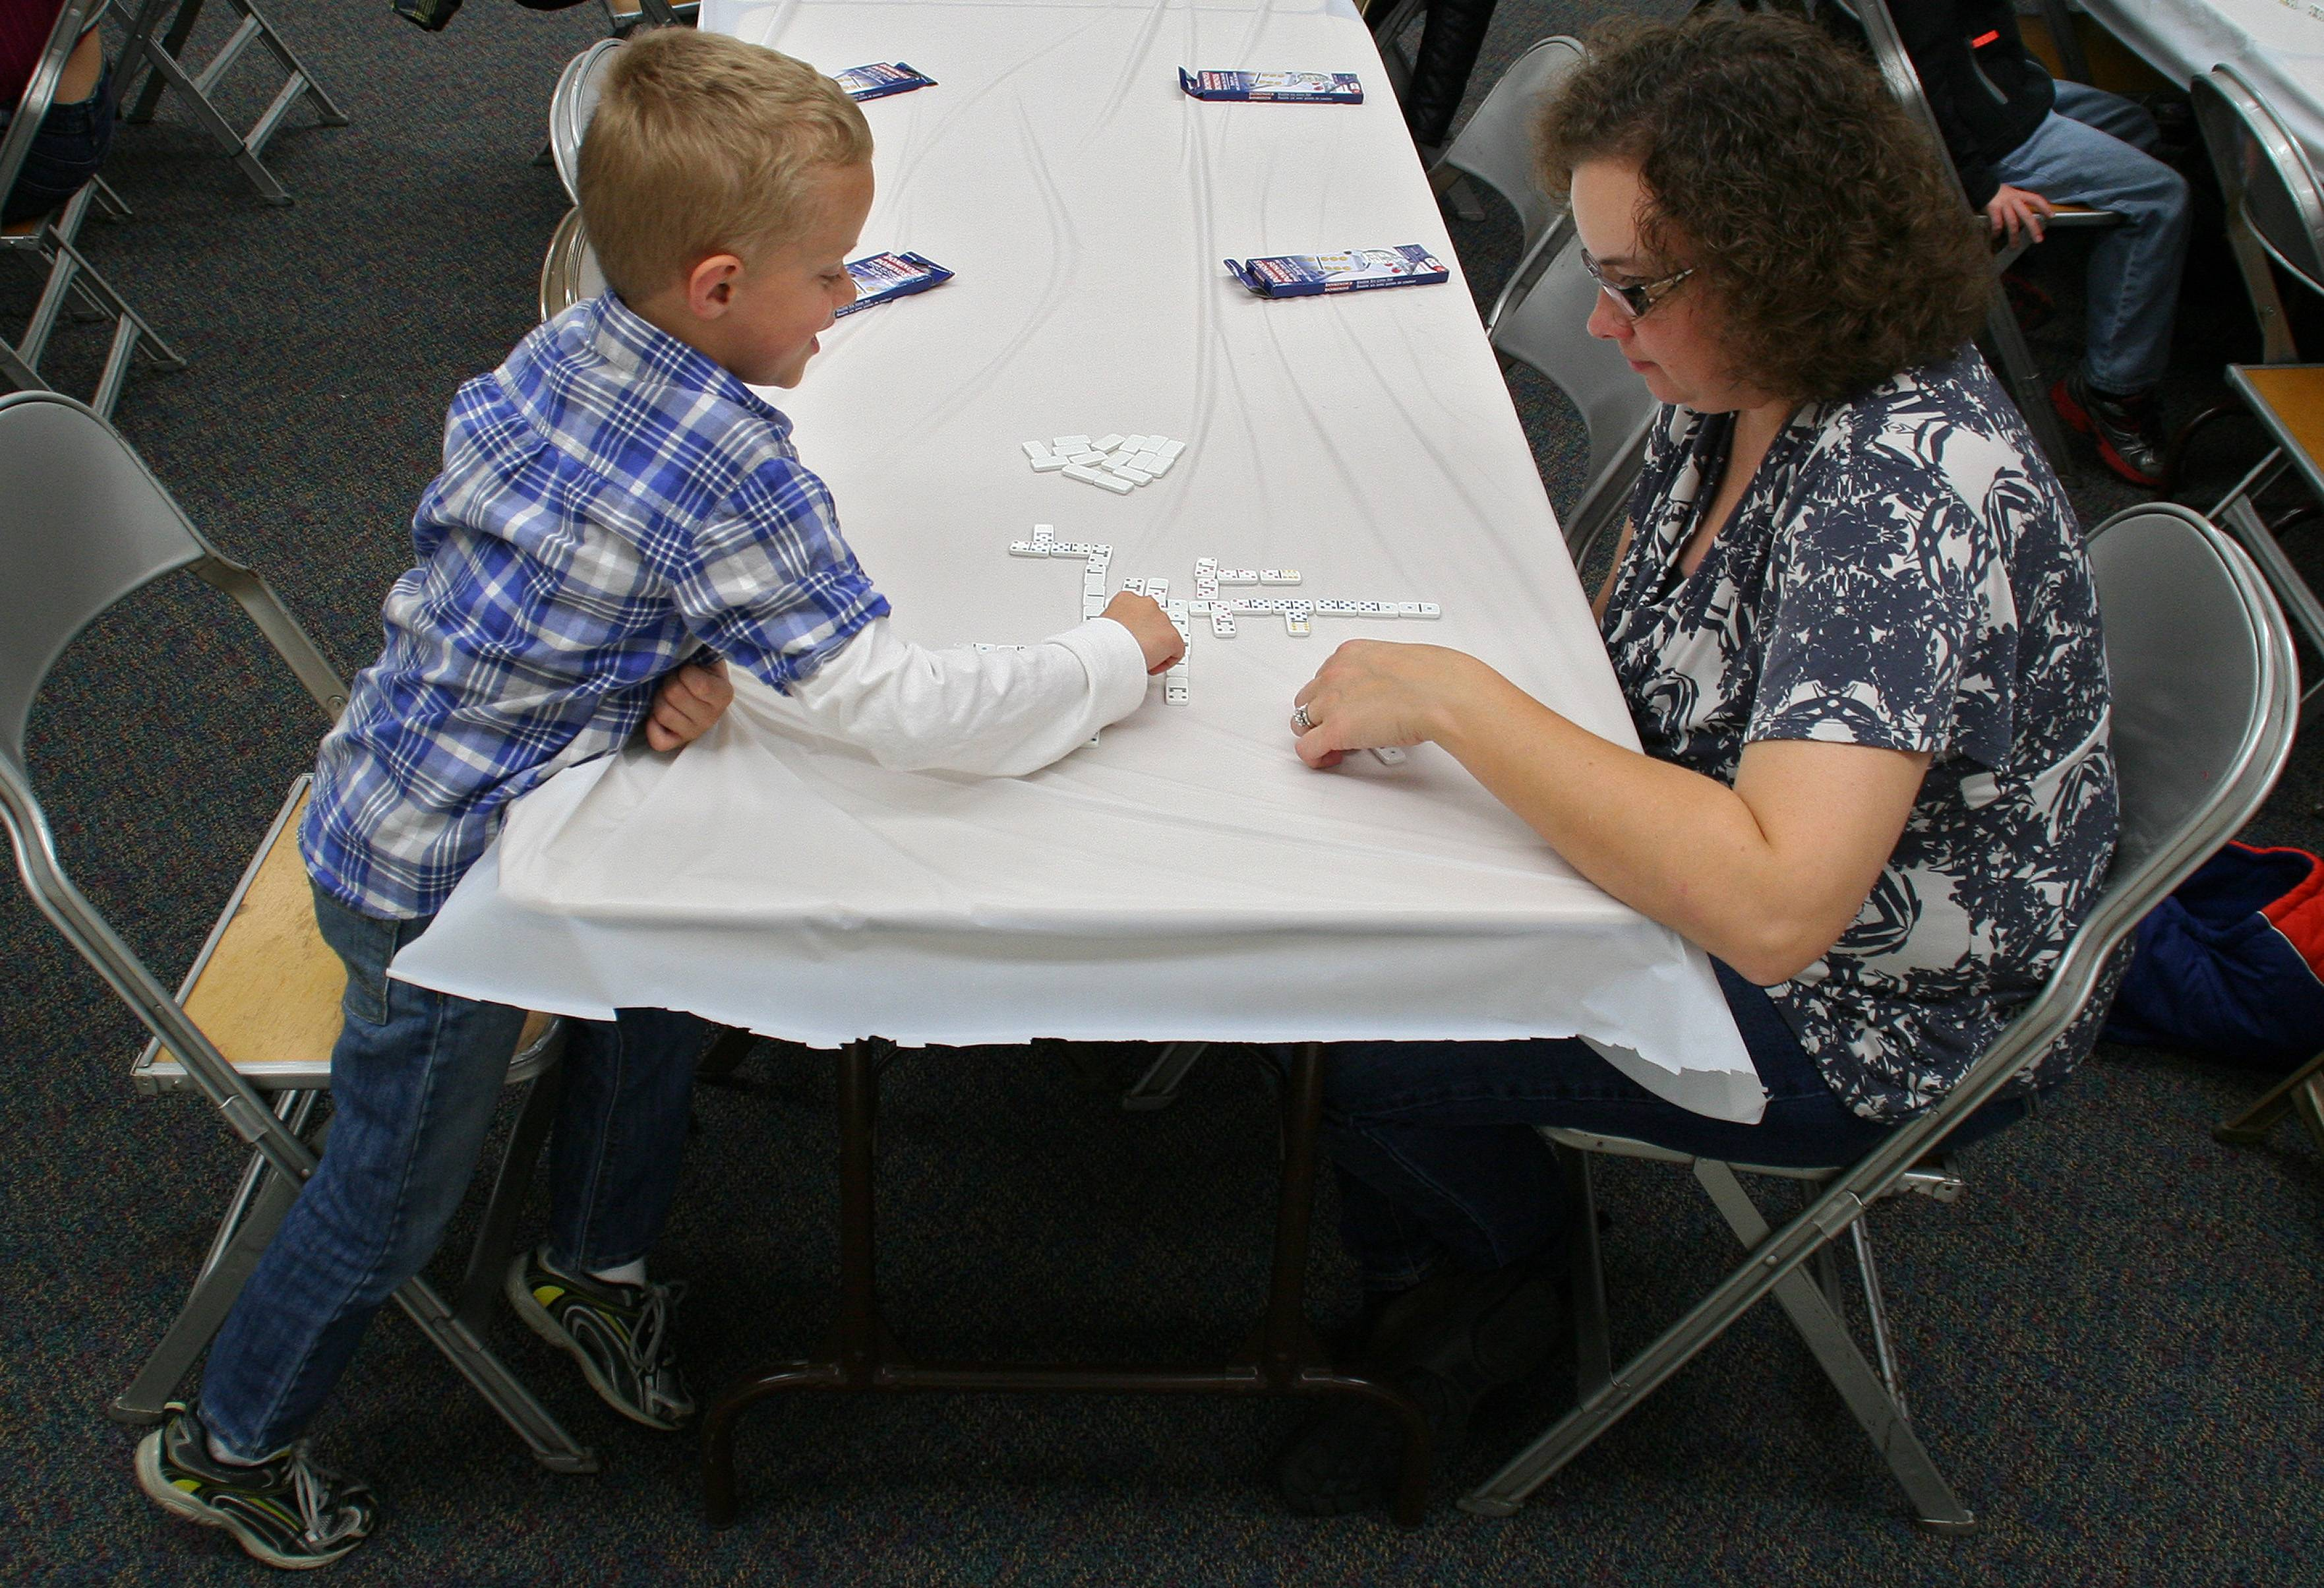 Christian Bardygula, and his mom, Dawn, play dominoes at the Mother and Son Dominoes and Pizza Event on October 19.